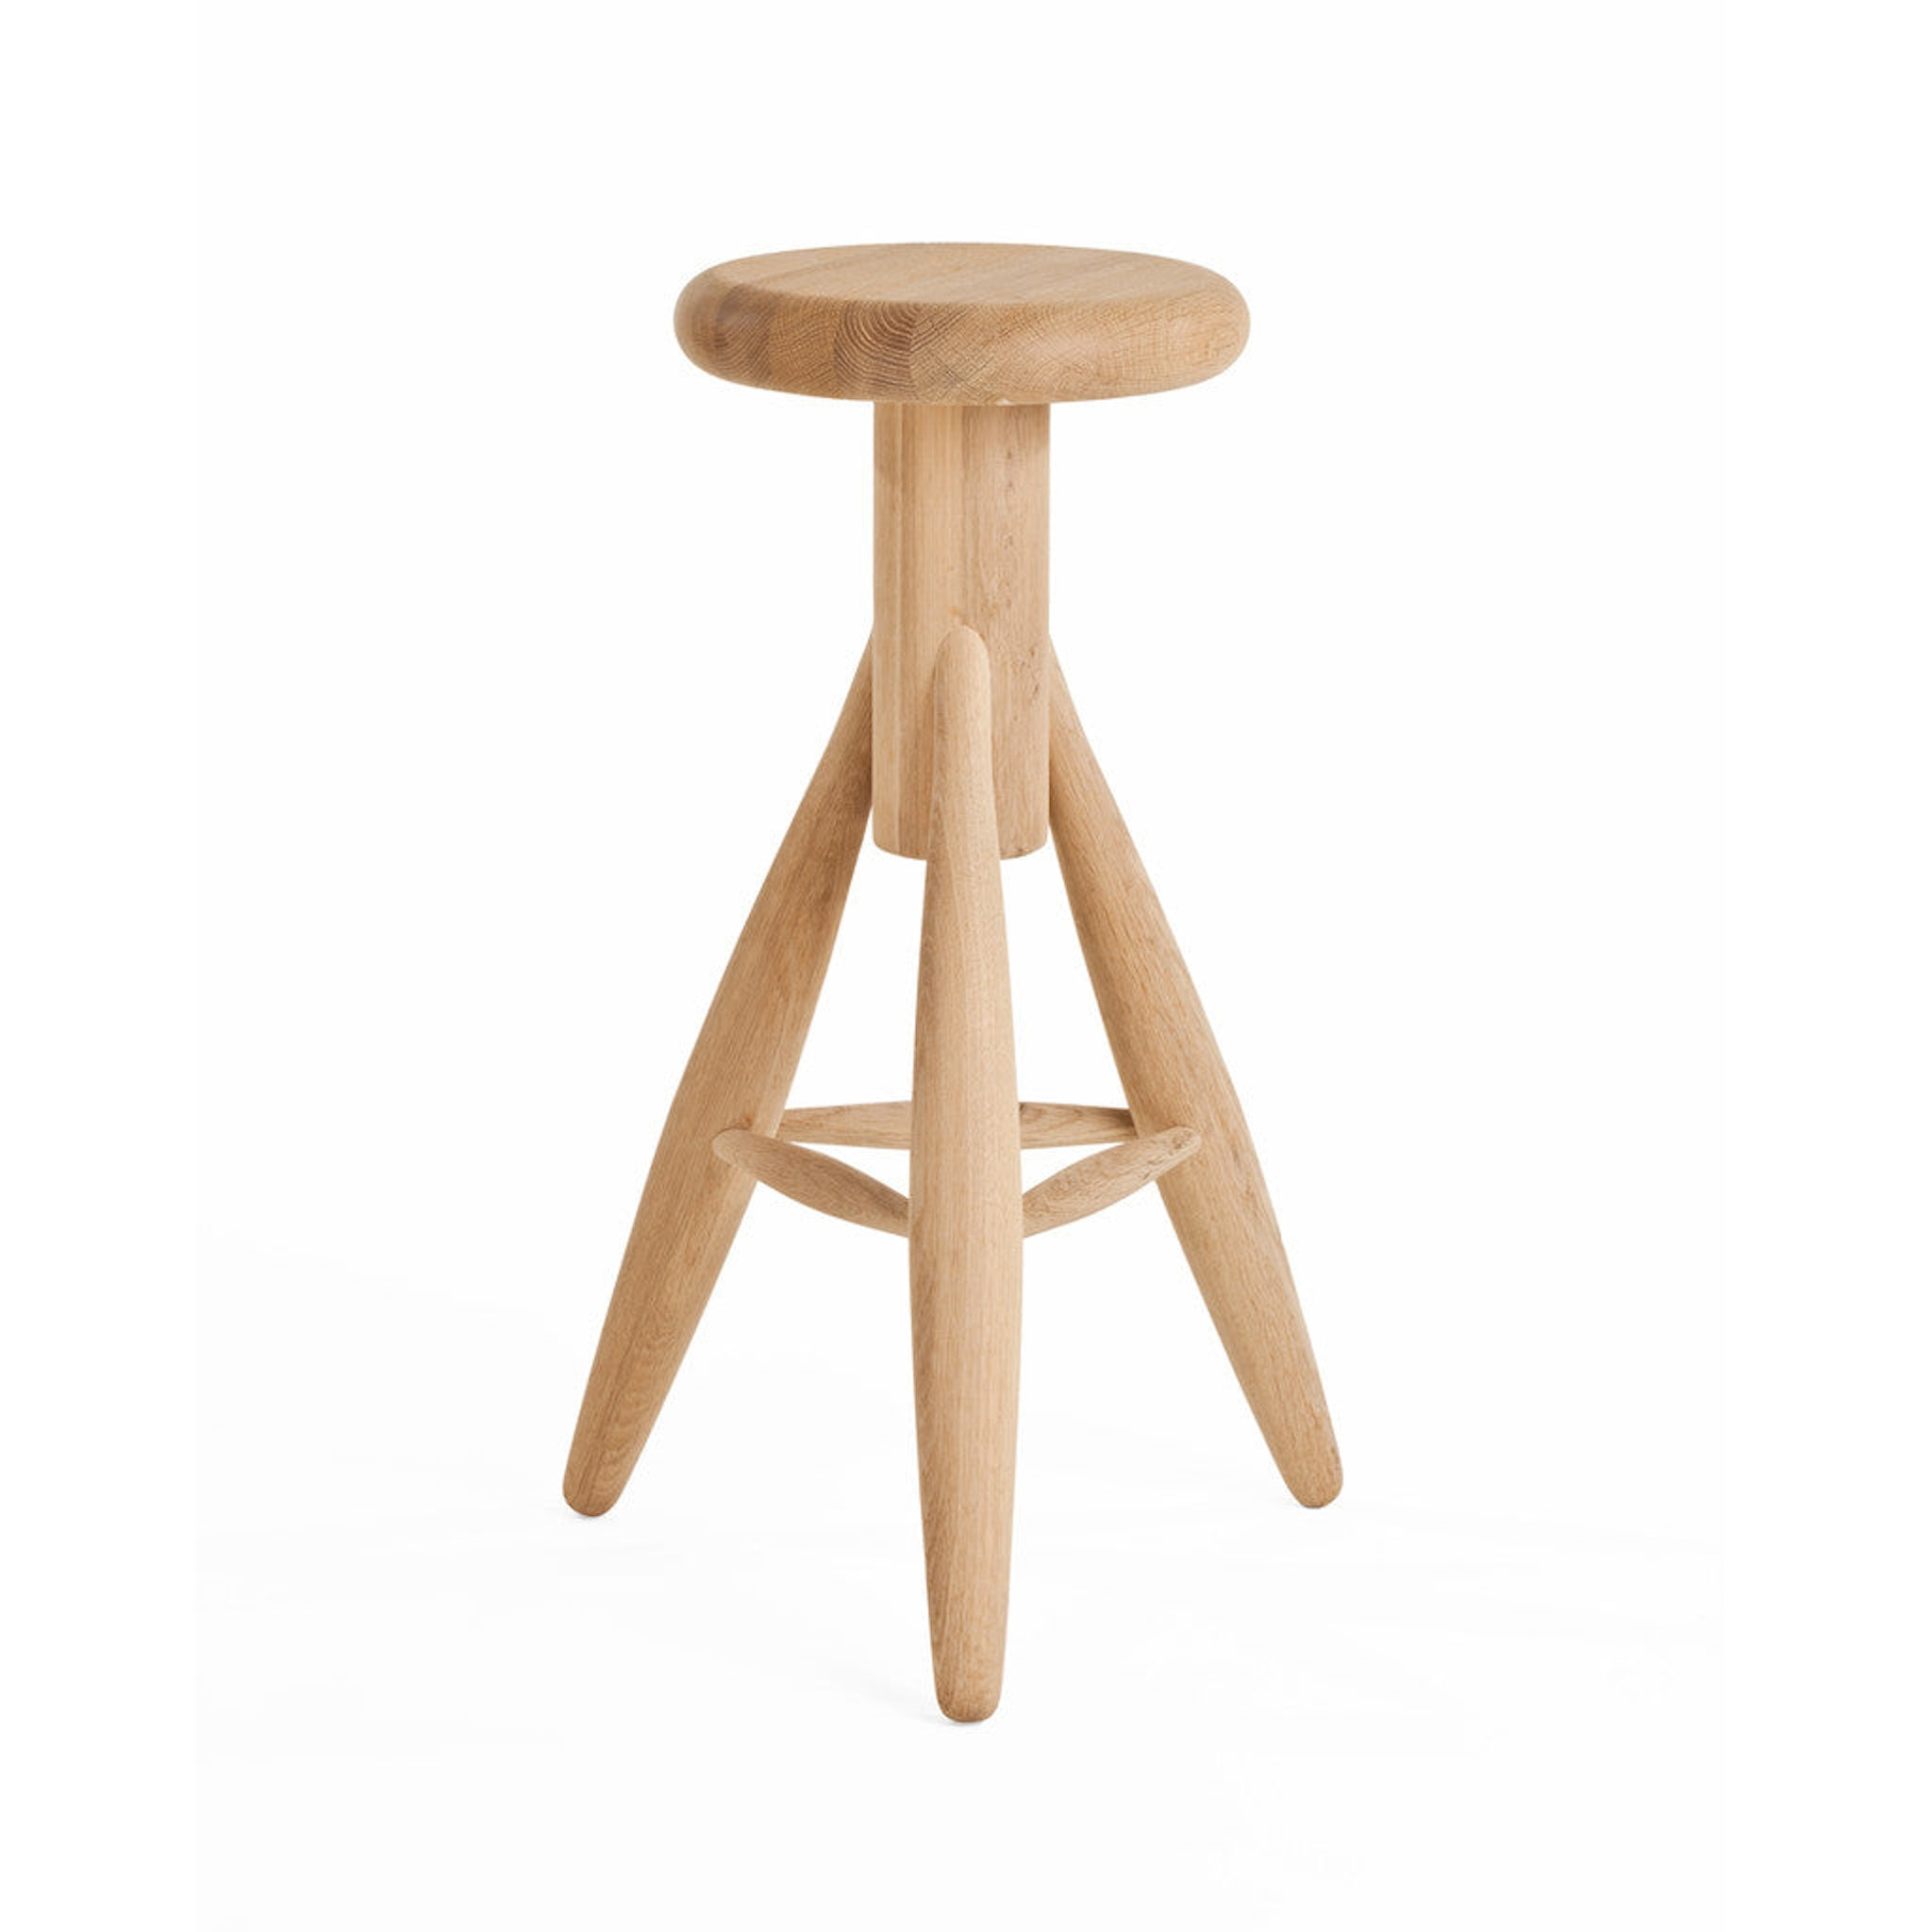 Rocket Stool by Eero Aarnio